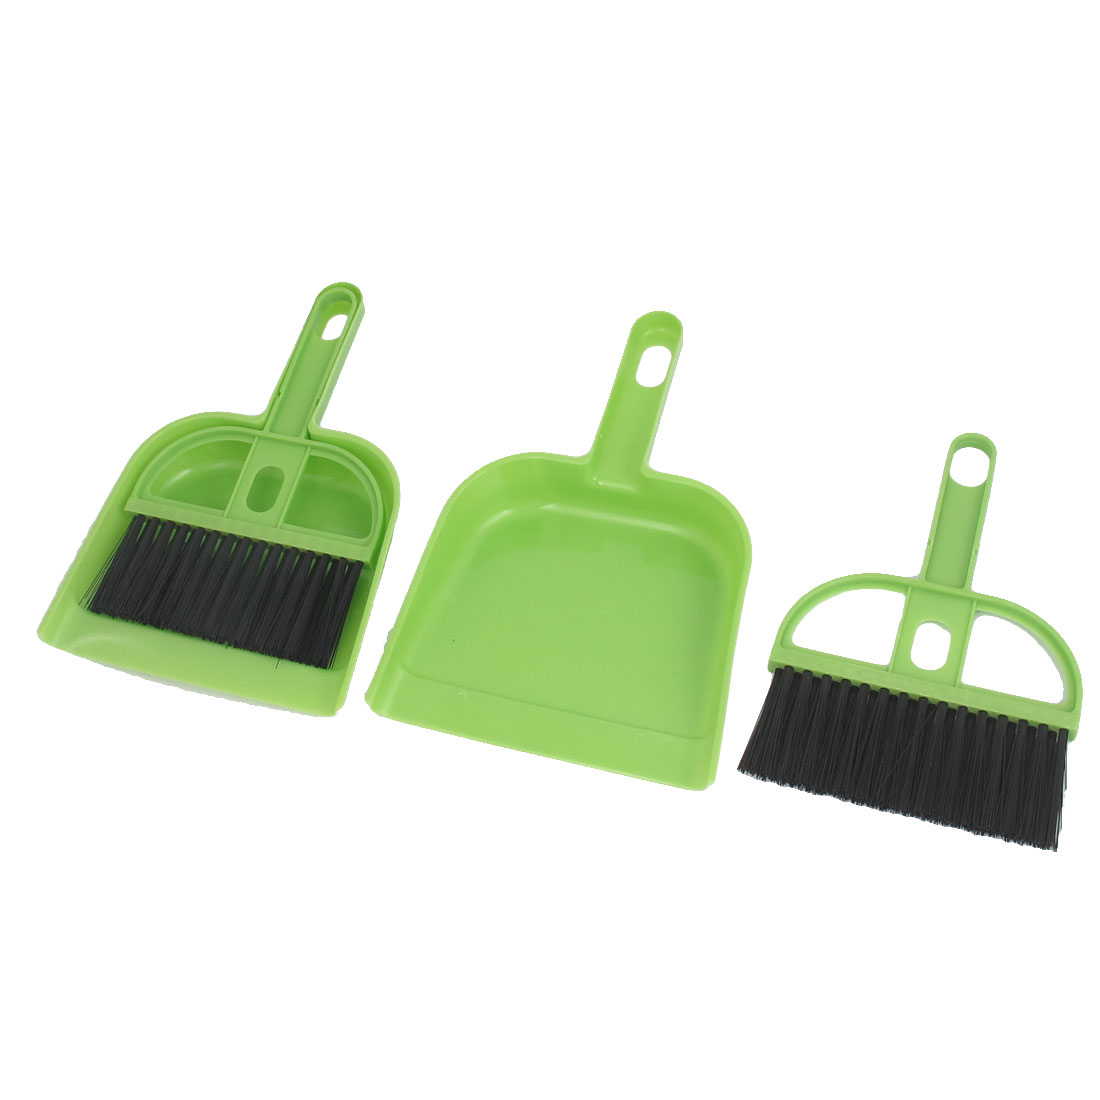 Desktop Computer Keyboard PC Plastic Cleaning Brush Mini Dustpan Duster Cleaner Green 2 Set